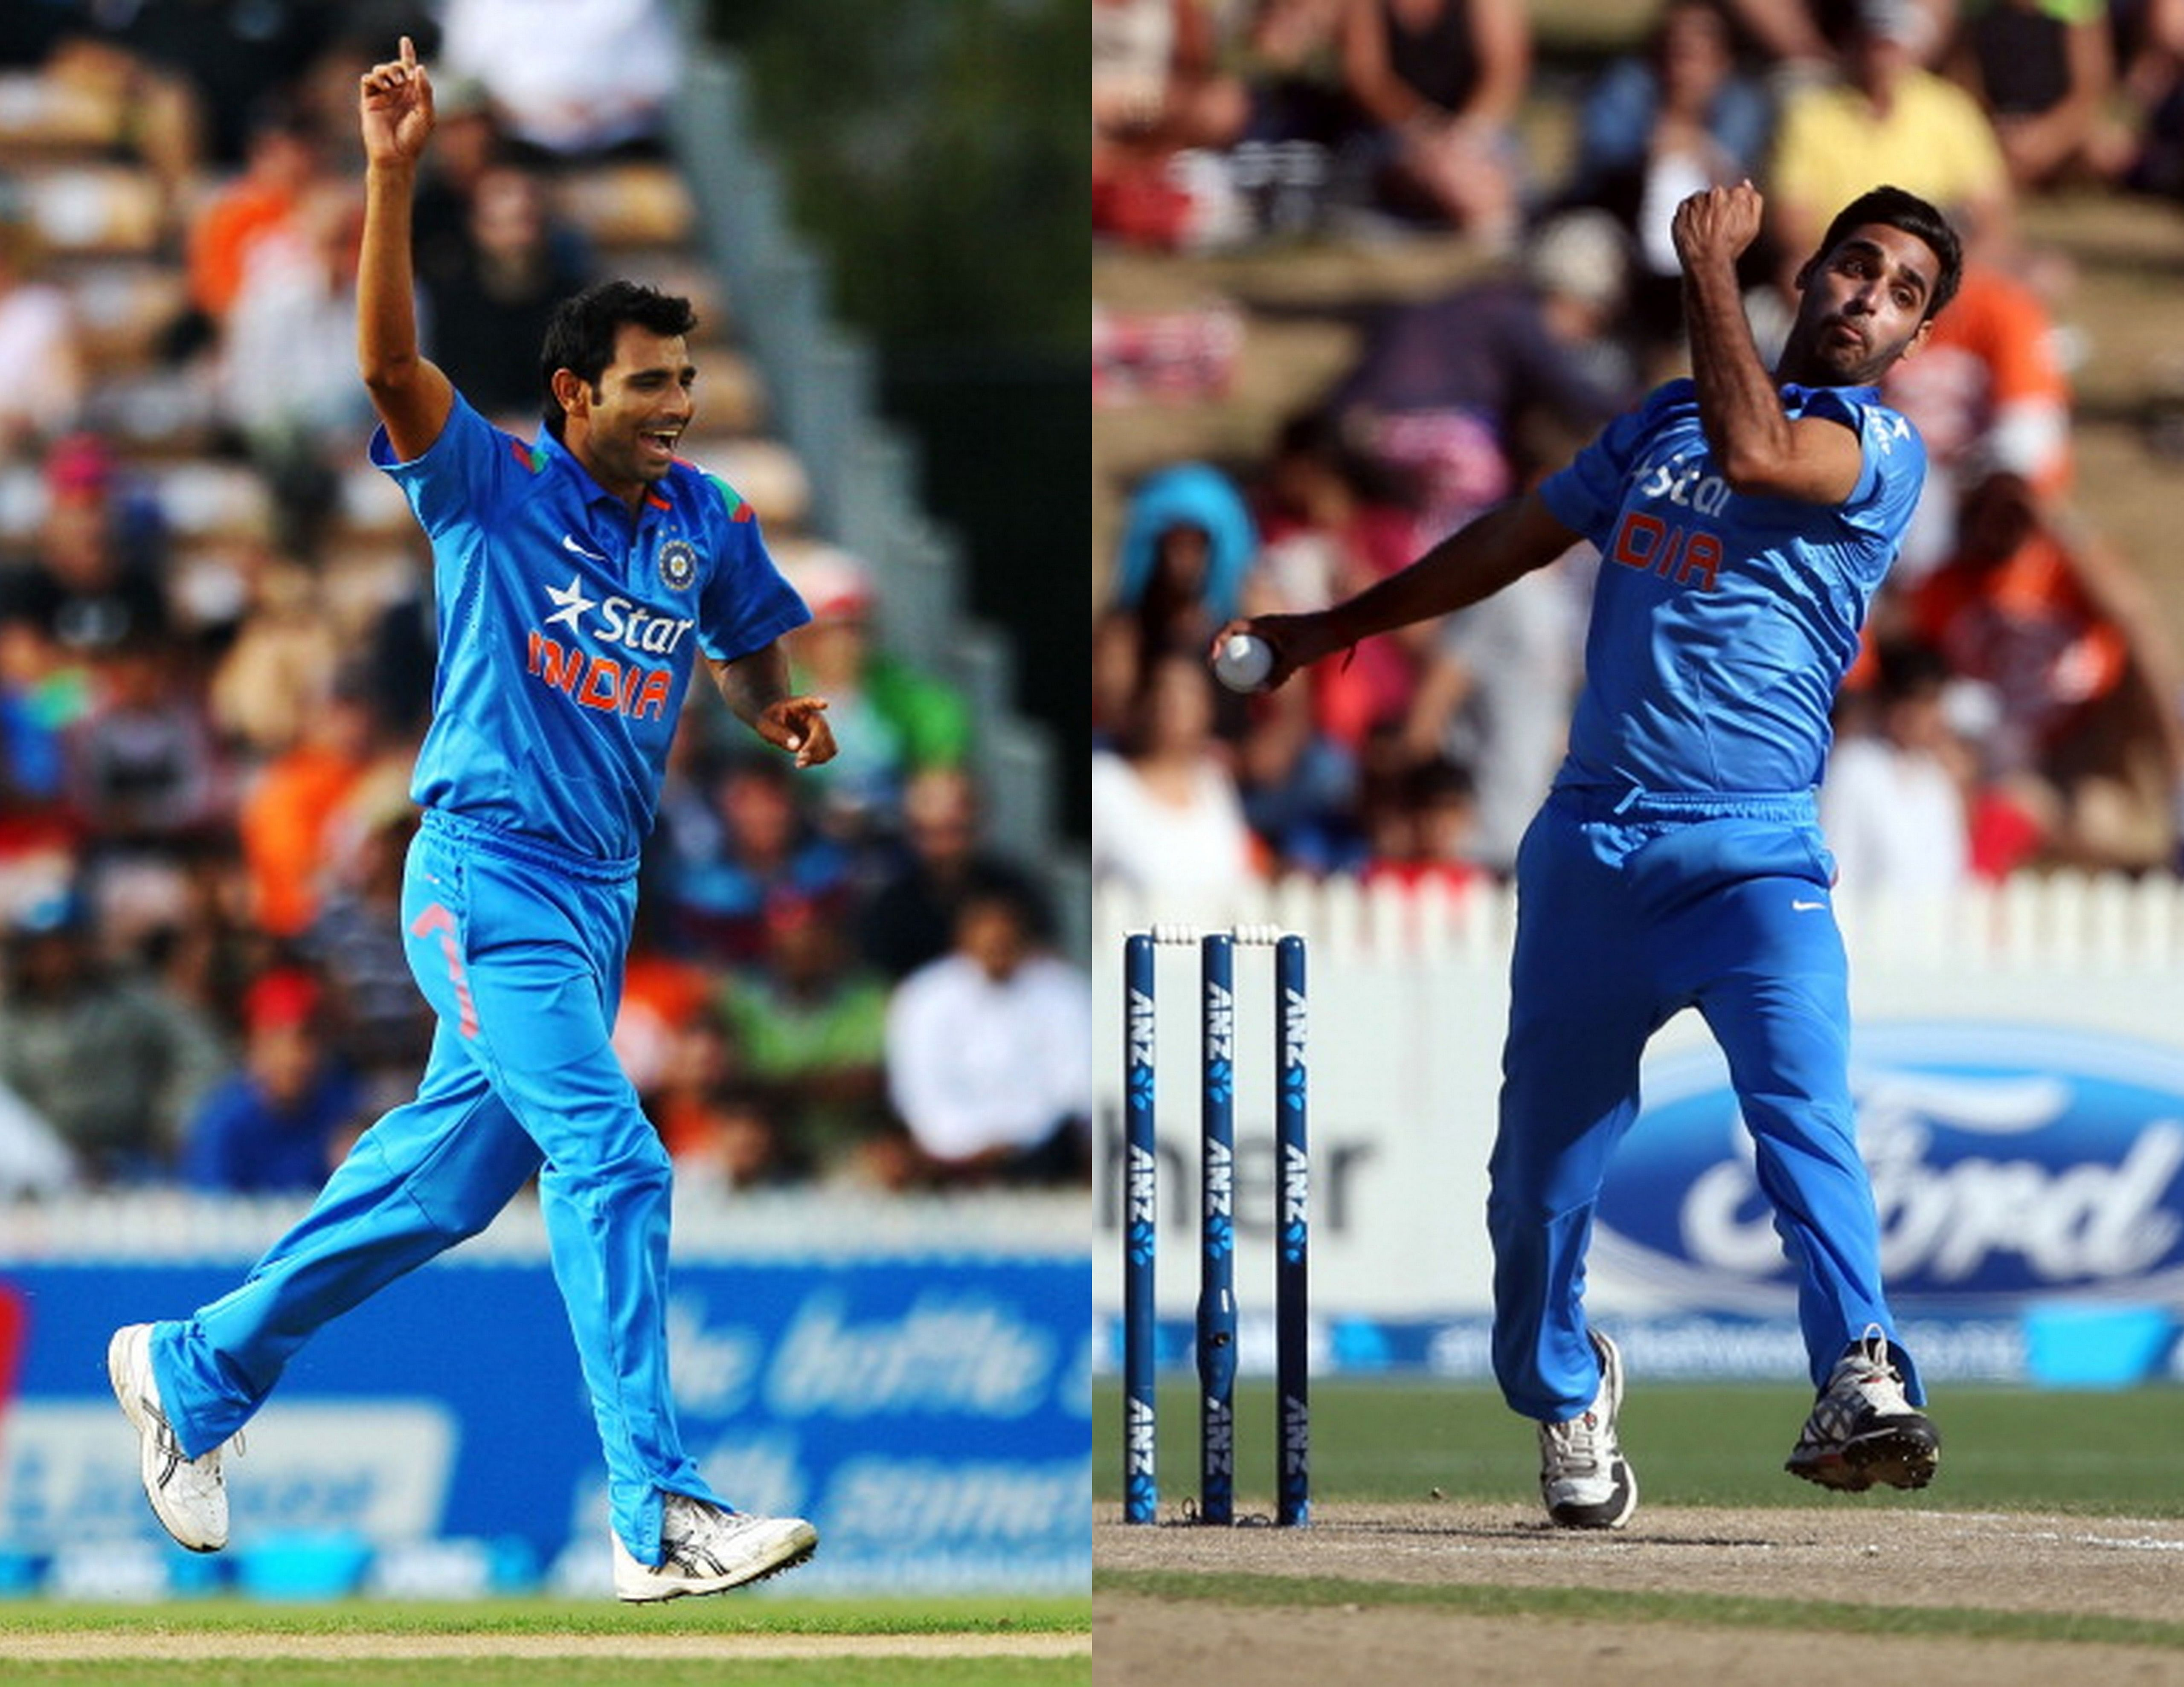 India tour of England 2014: SWOT analysis of Indian bowling